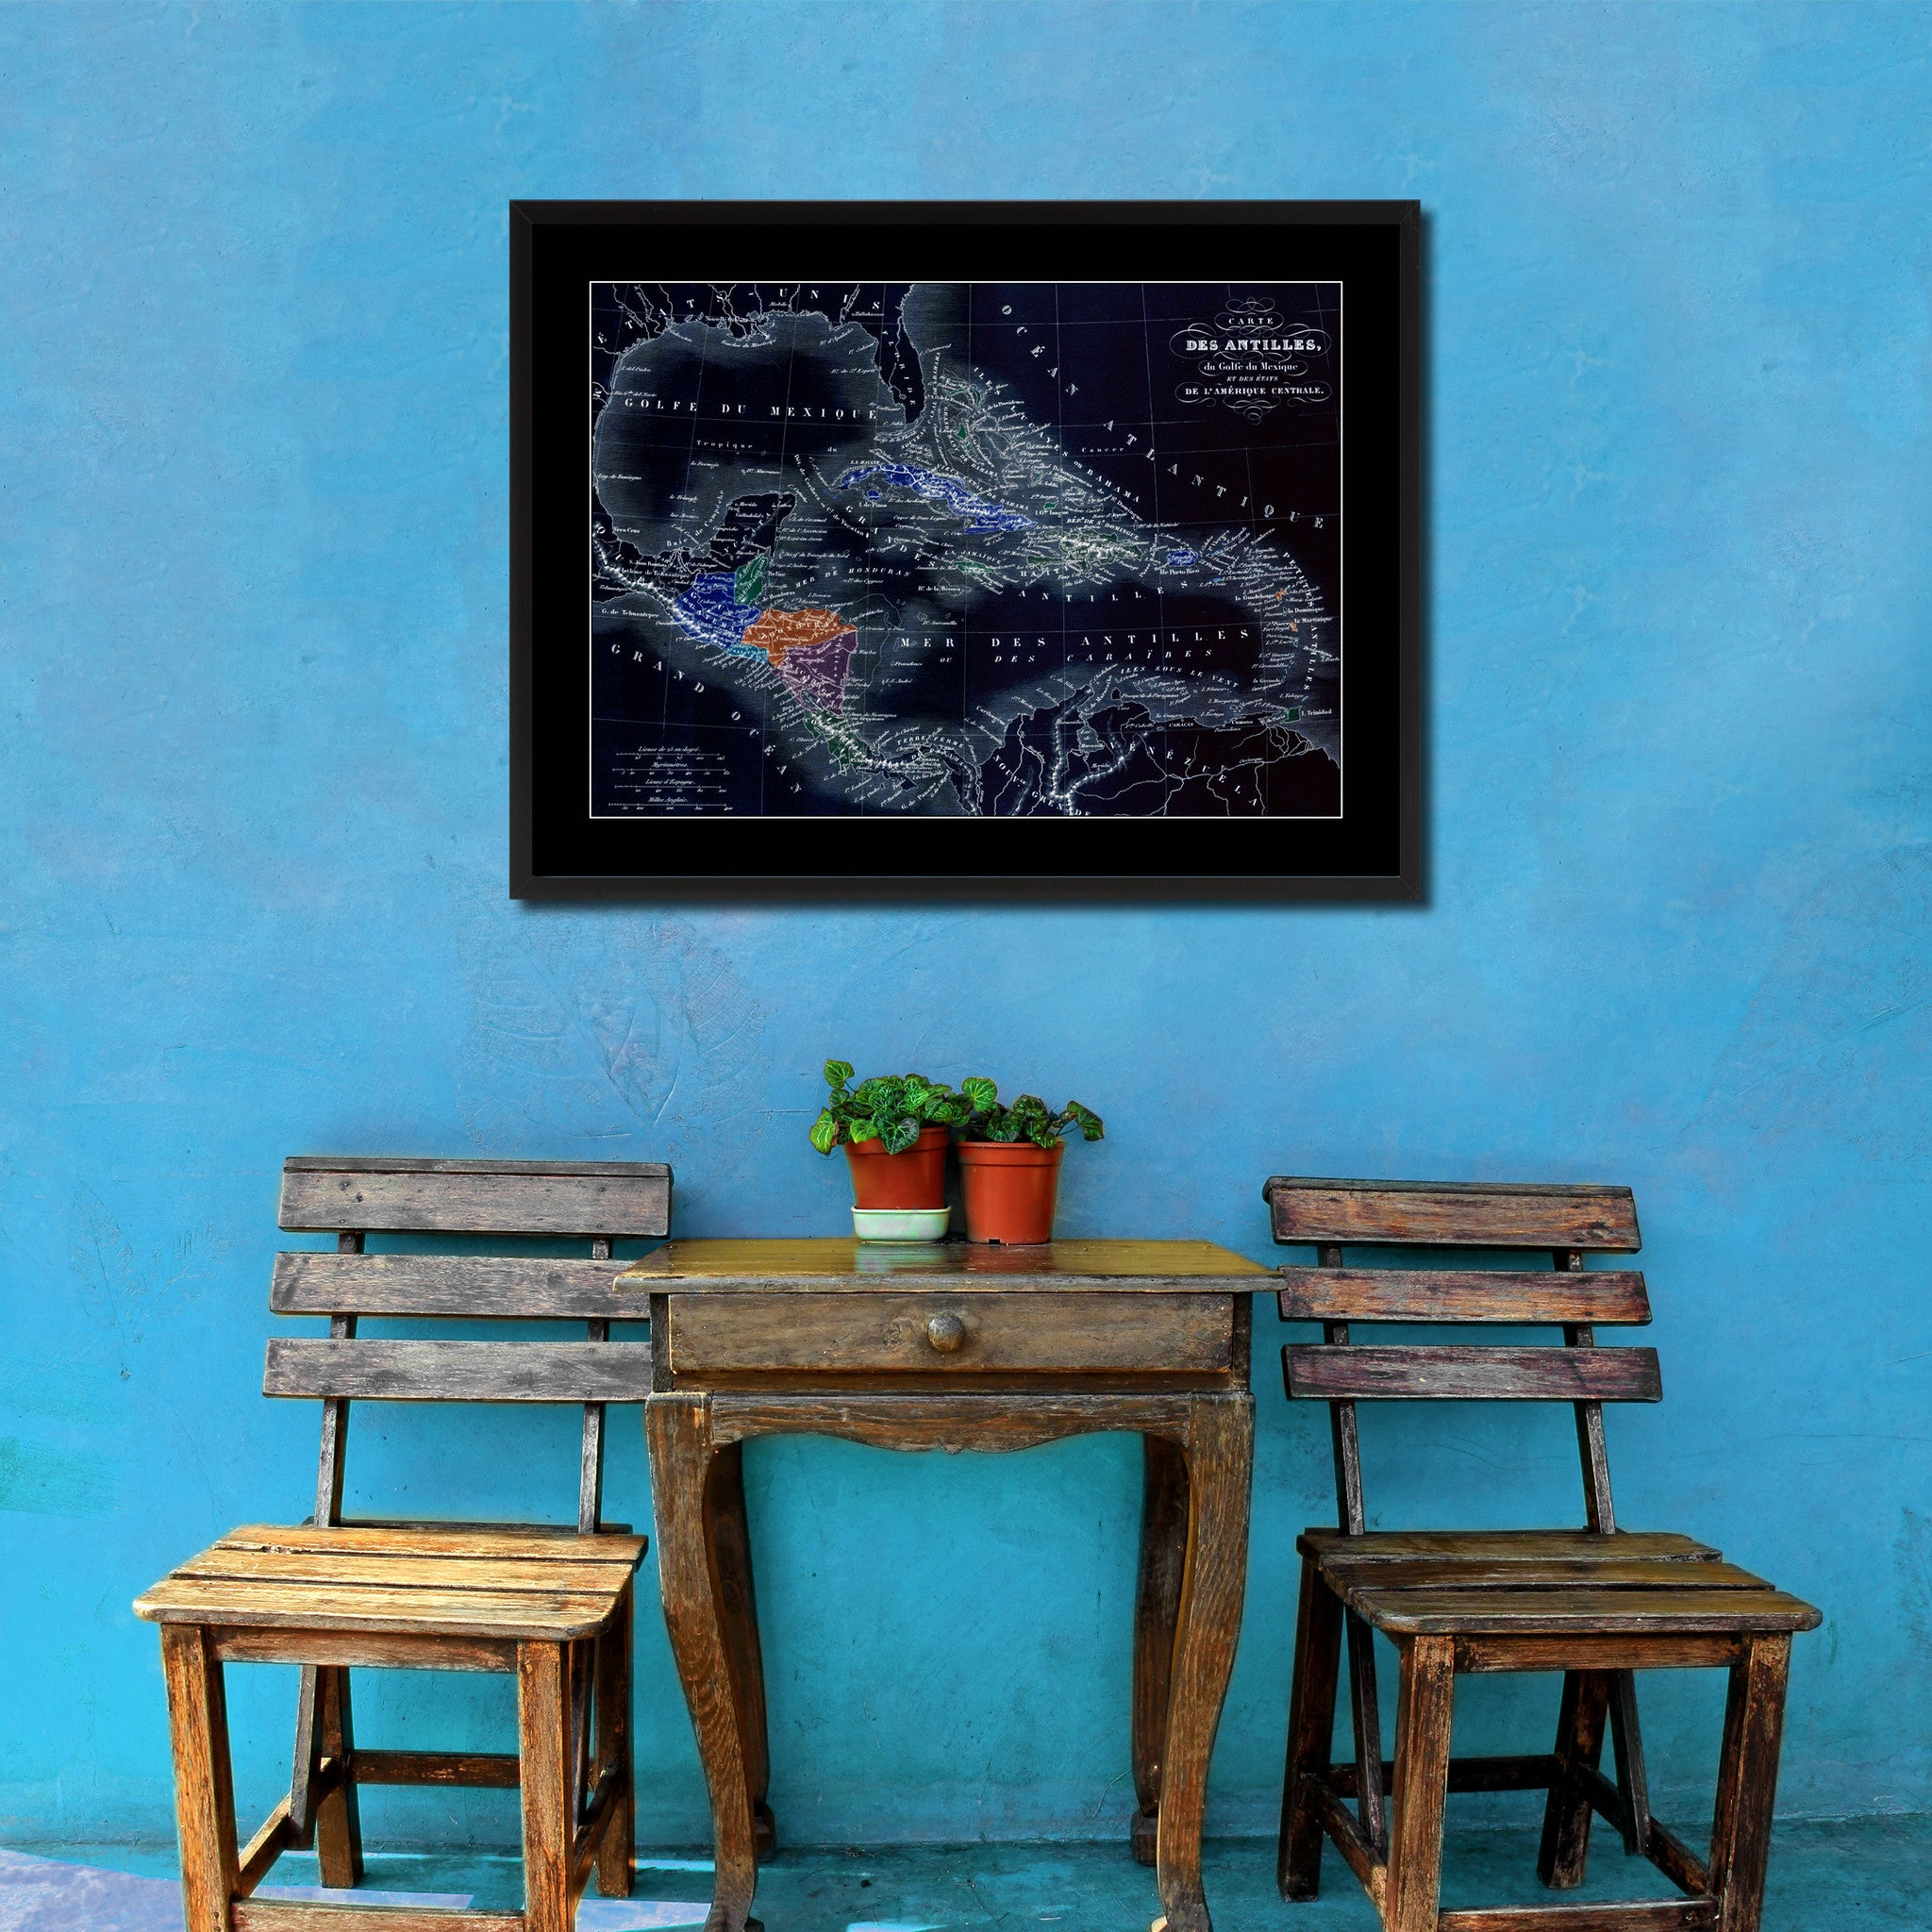 West Indies Caribbean Vintage Vivid Color Map Canvas Print, Picture Frame Home Decor Wall Art Office Decoration Gift Ideas